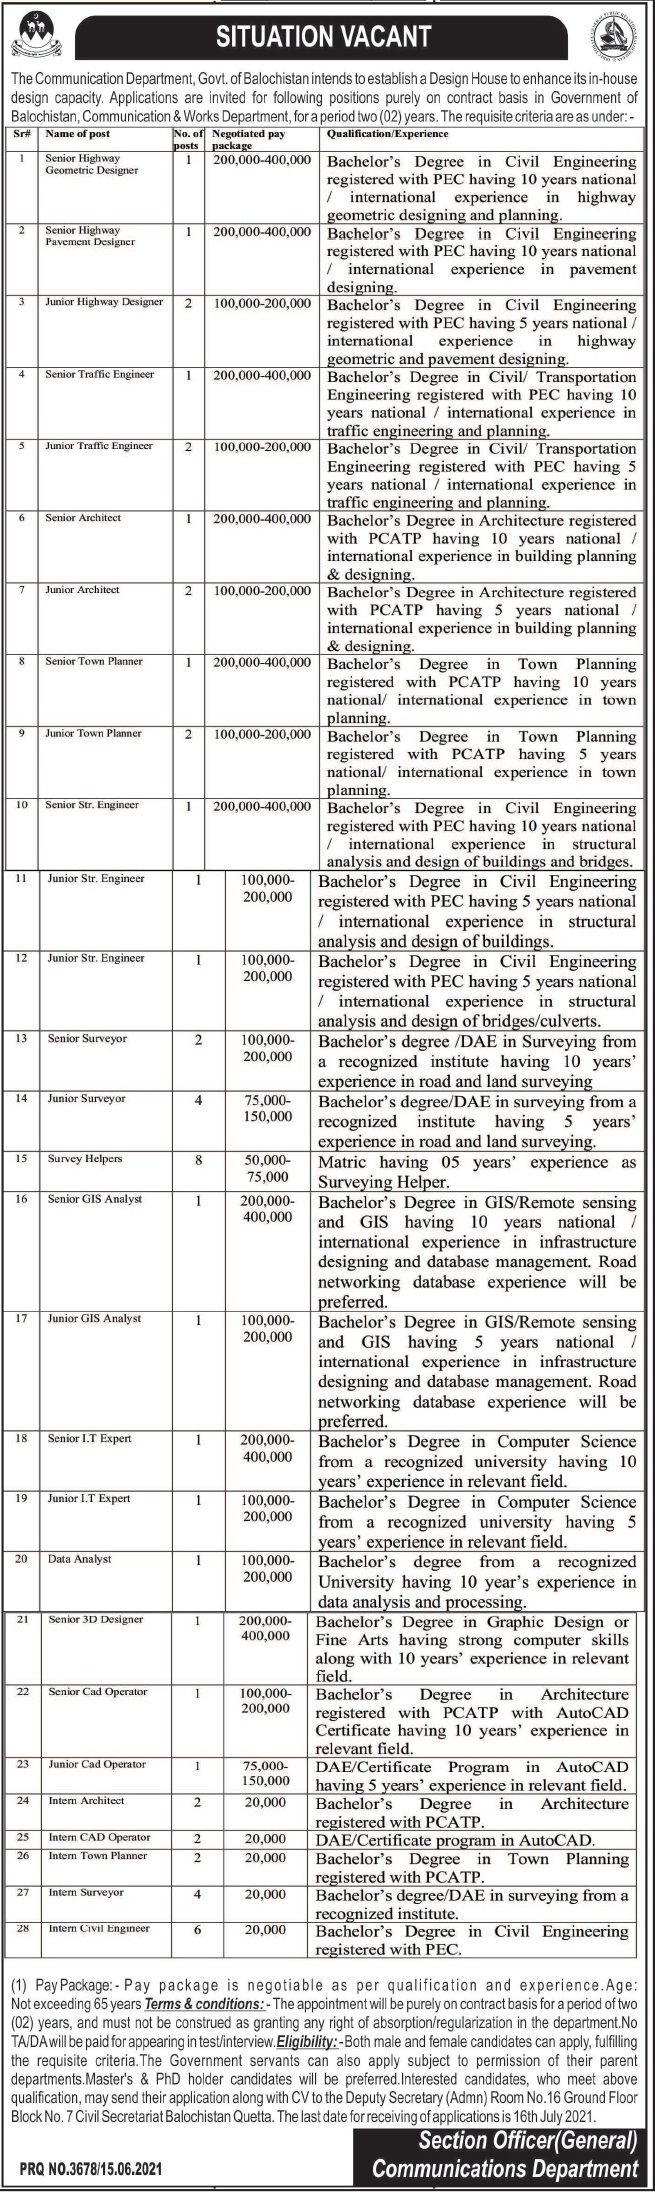 Jobs in Communication Department For Management Staff 2021